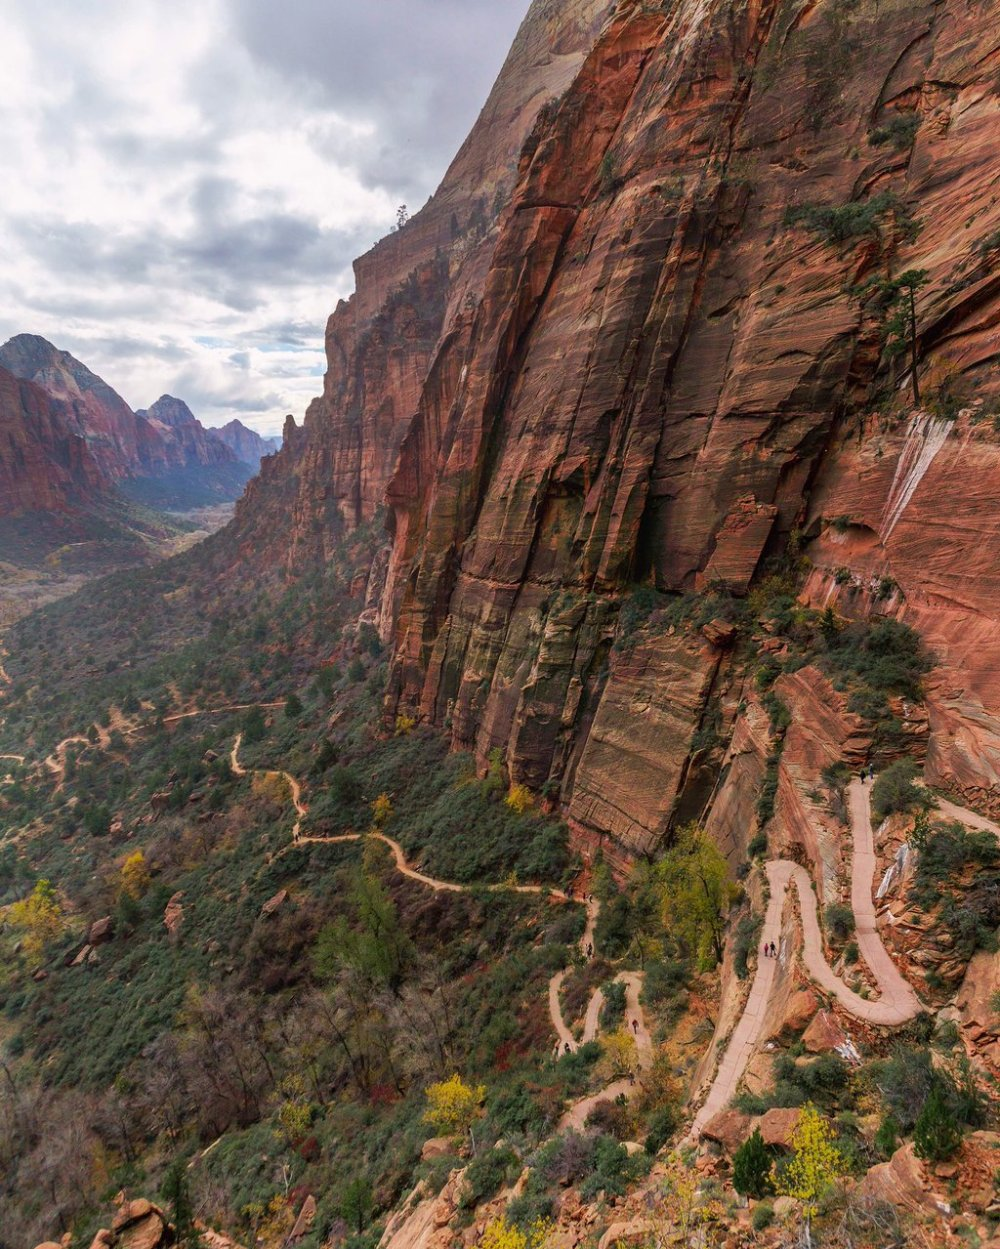 Hiking Angels Landing to Observation Point is one of the 2 iconic hikes in Zion National Park (The other being The Narrows). Angels Landing is not for the faint of heart, though, as the narrow trail has a steep drop off for much of it's climb. Tweeted by the US Department of the Interior, 3/29/16.